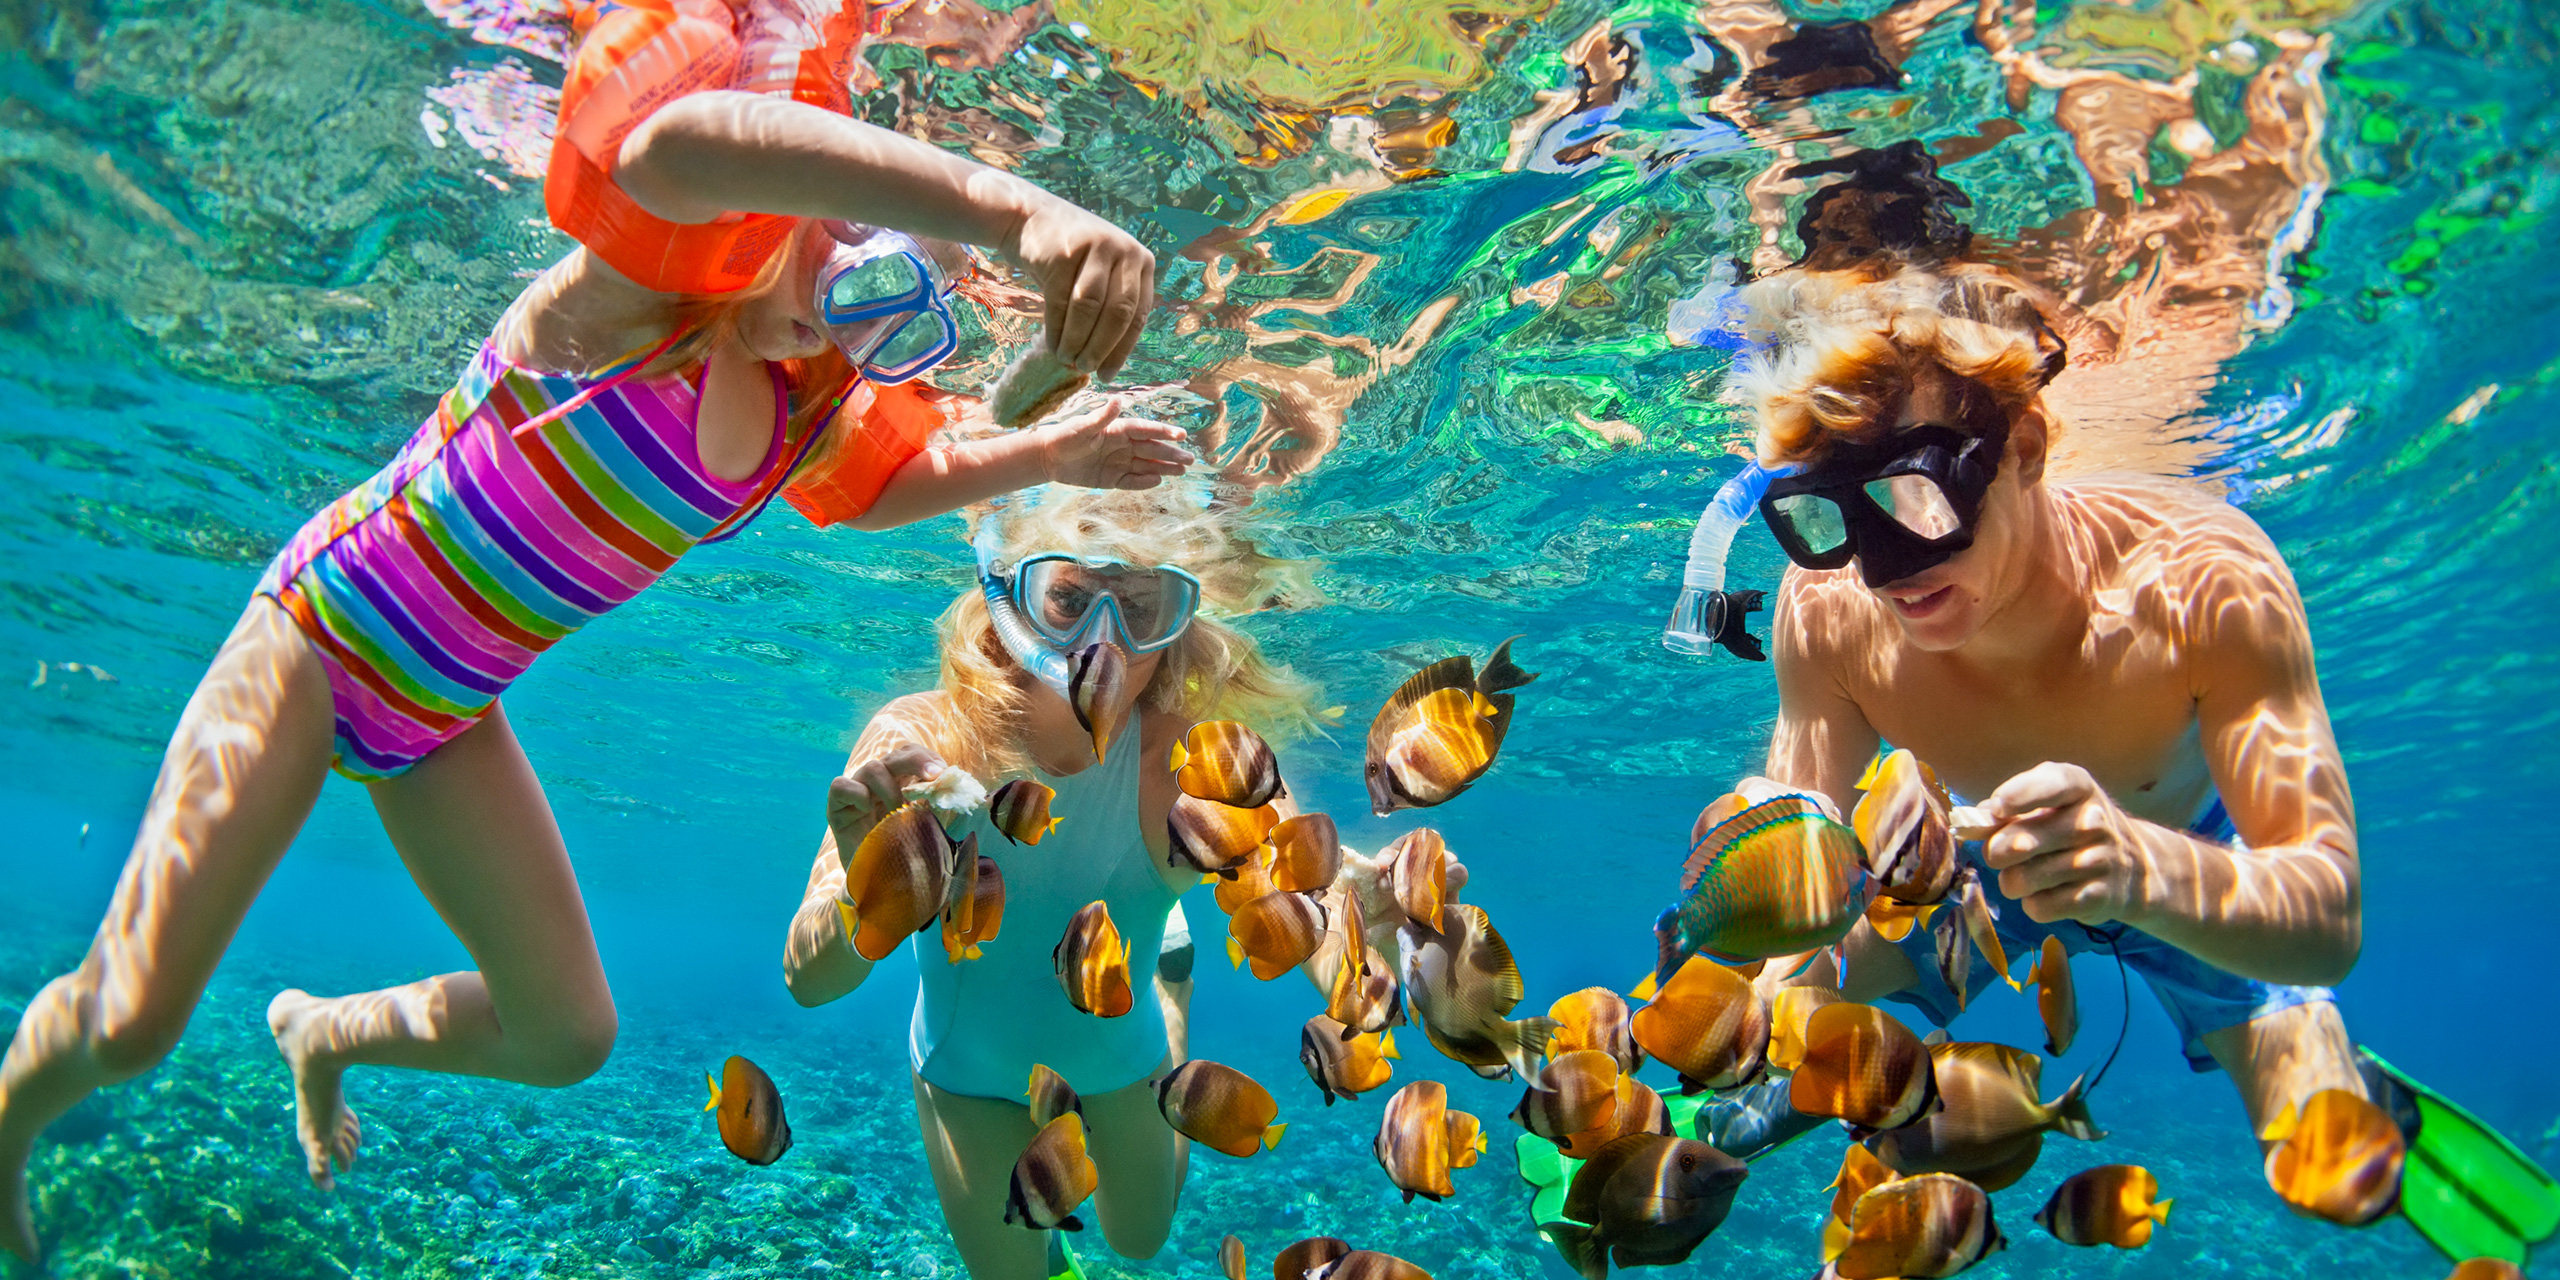 father, mother, child in snorkeling mask dive underwater with tropical fishes in coral reef sea pool; Courtesy of Tropical studio/Shutterstock